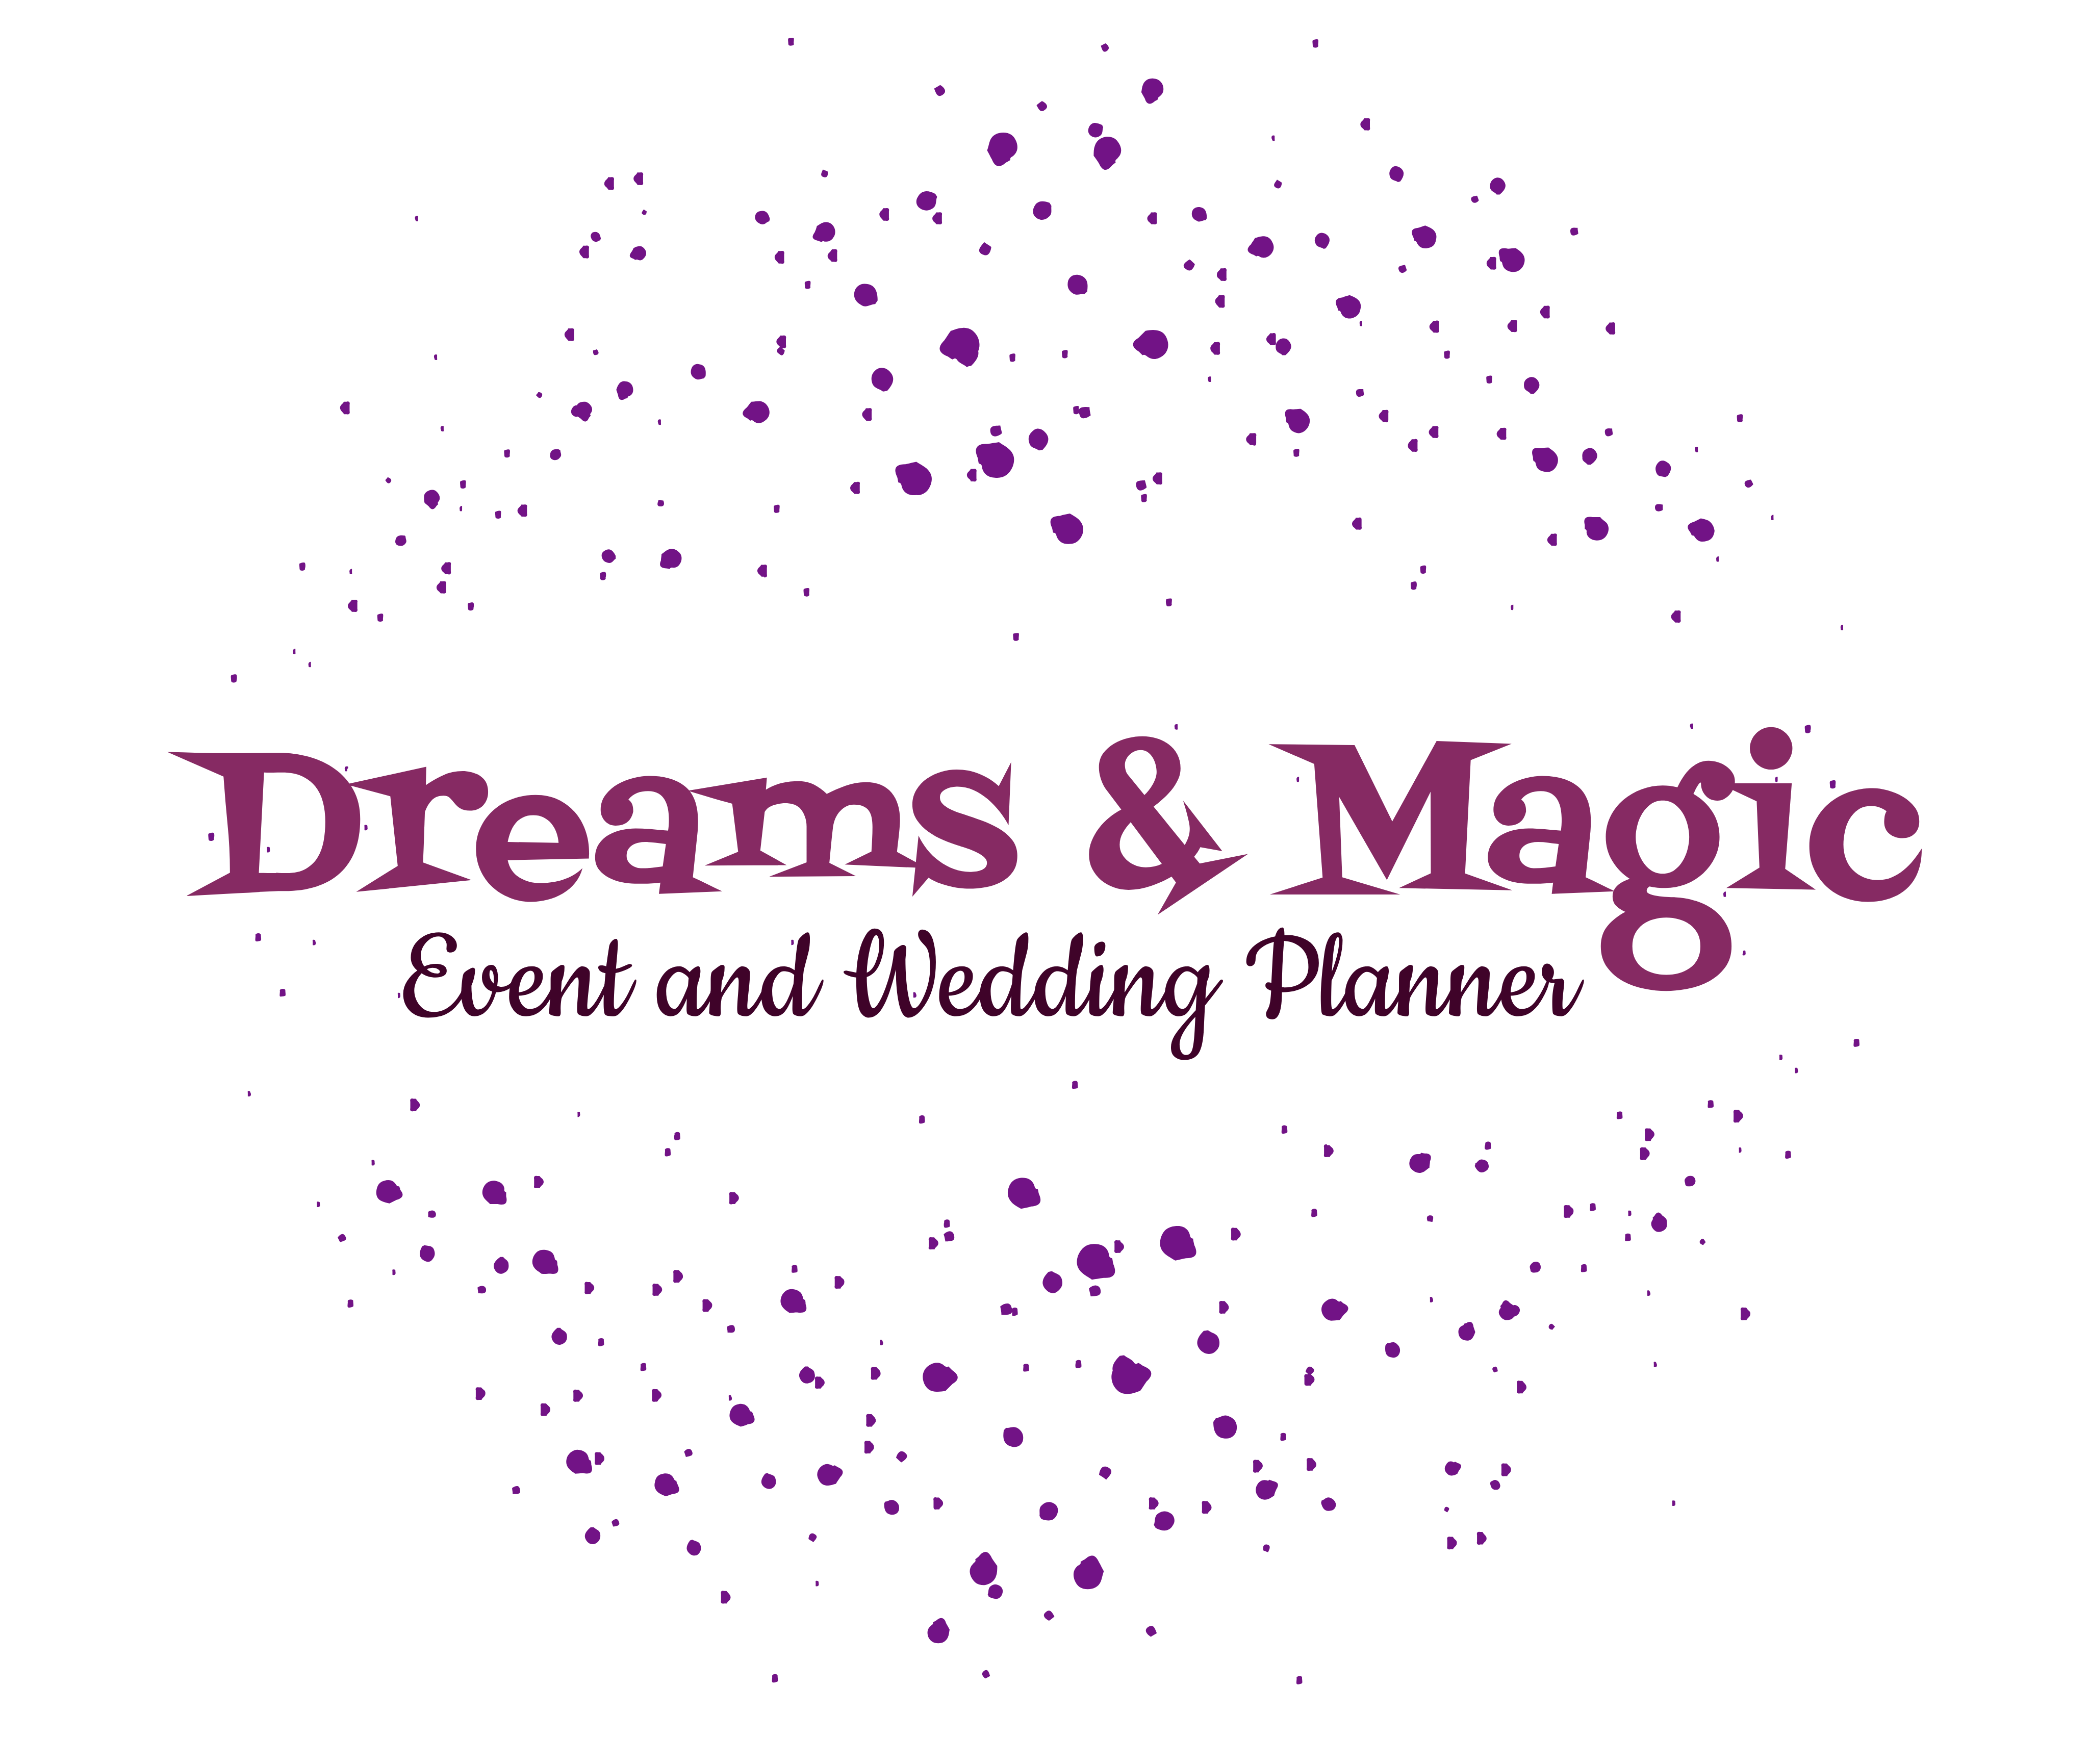 Dreams & Magic